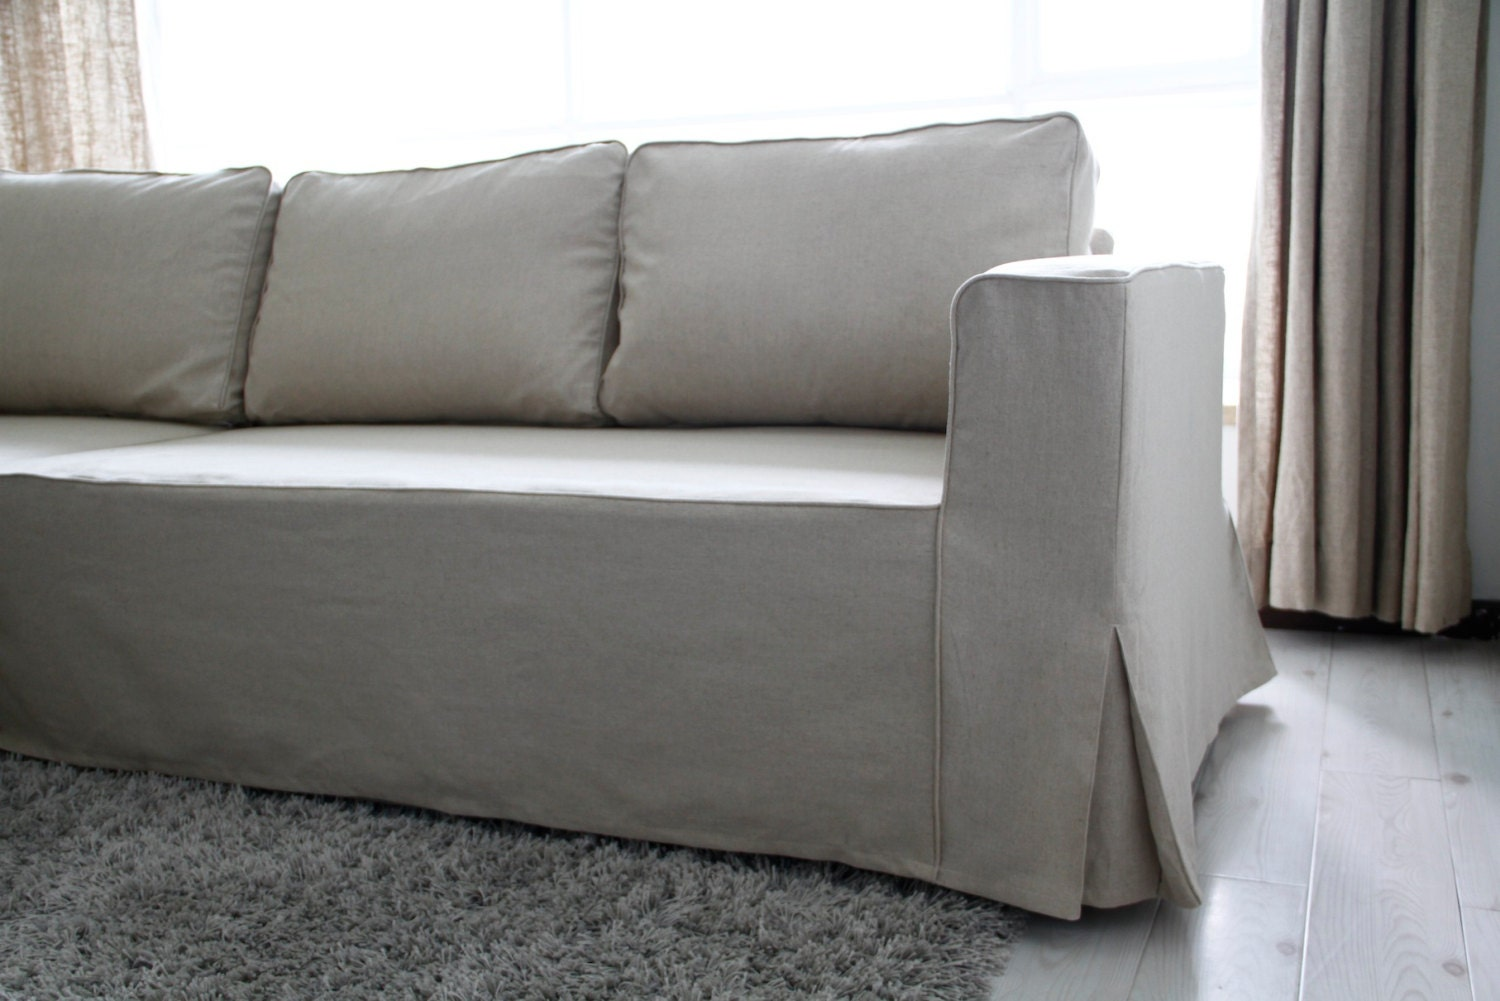 Custom Ikea Manstad Sofa Bed Cover Loose Fit Style By Comfortworks